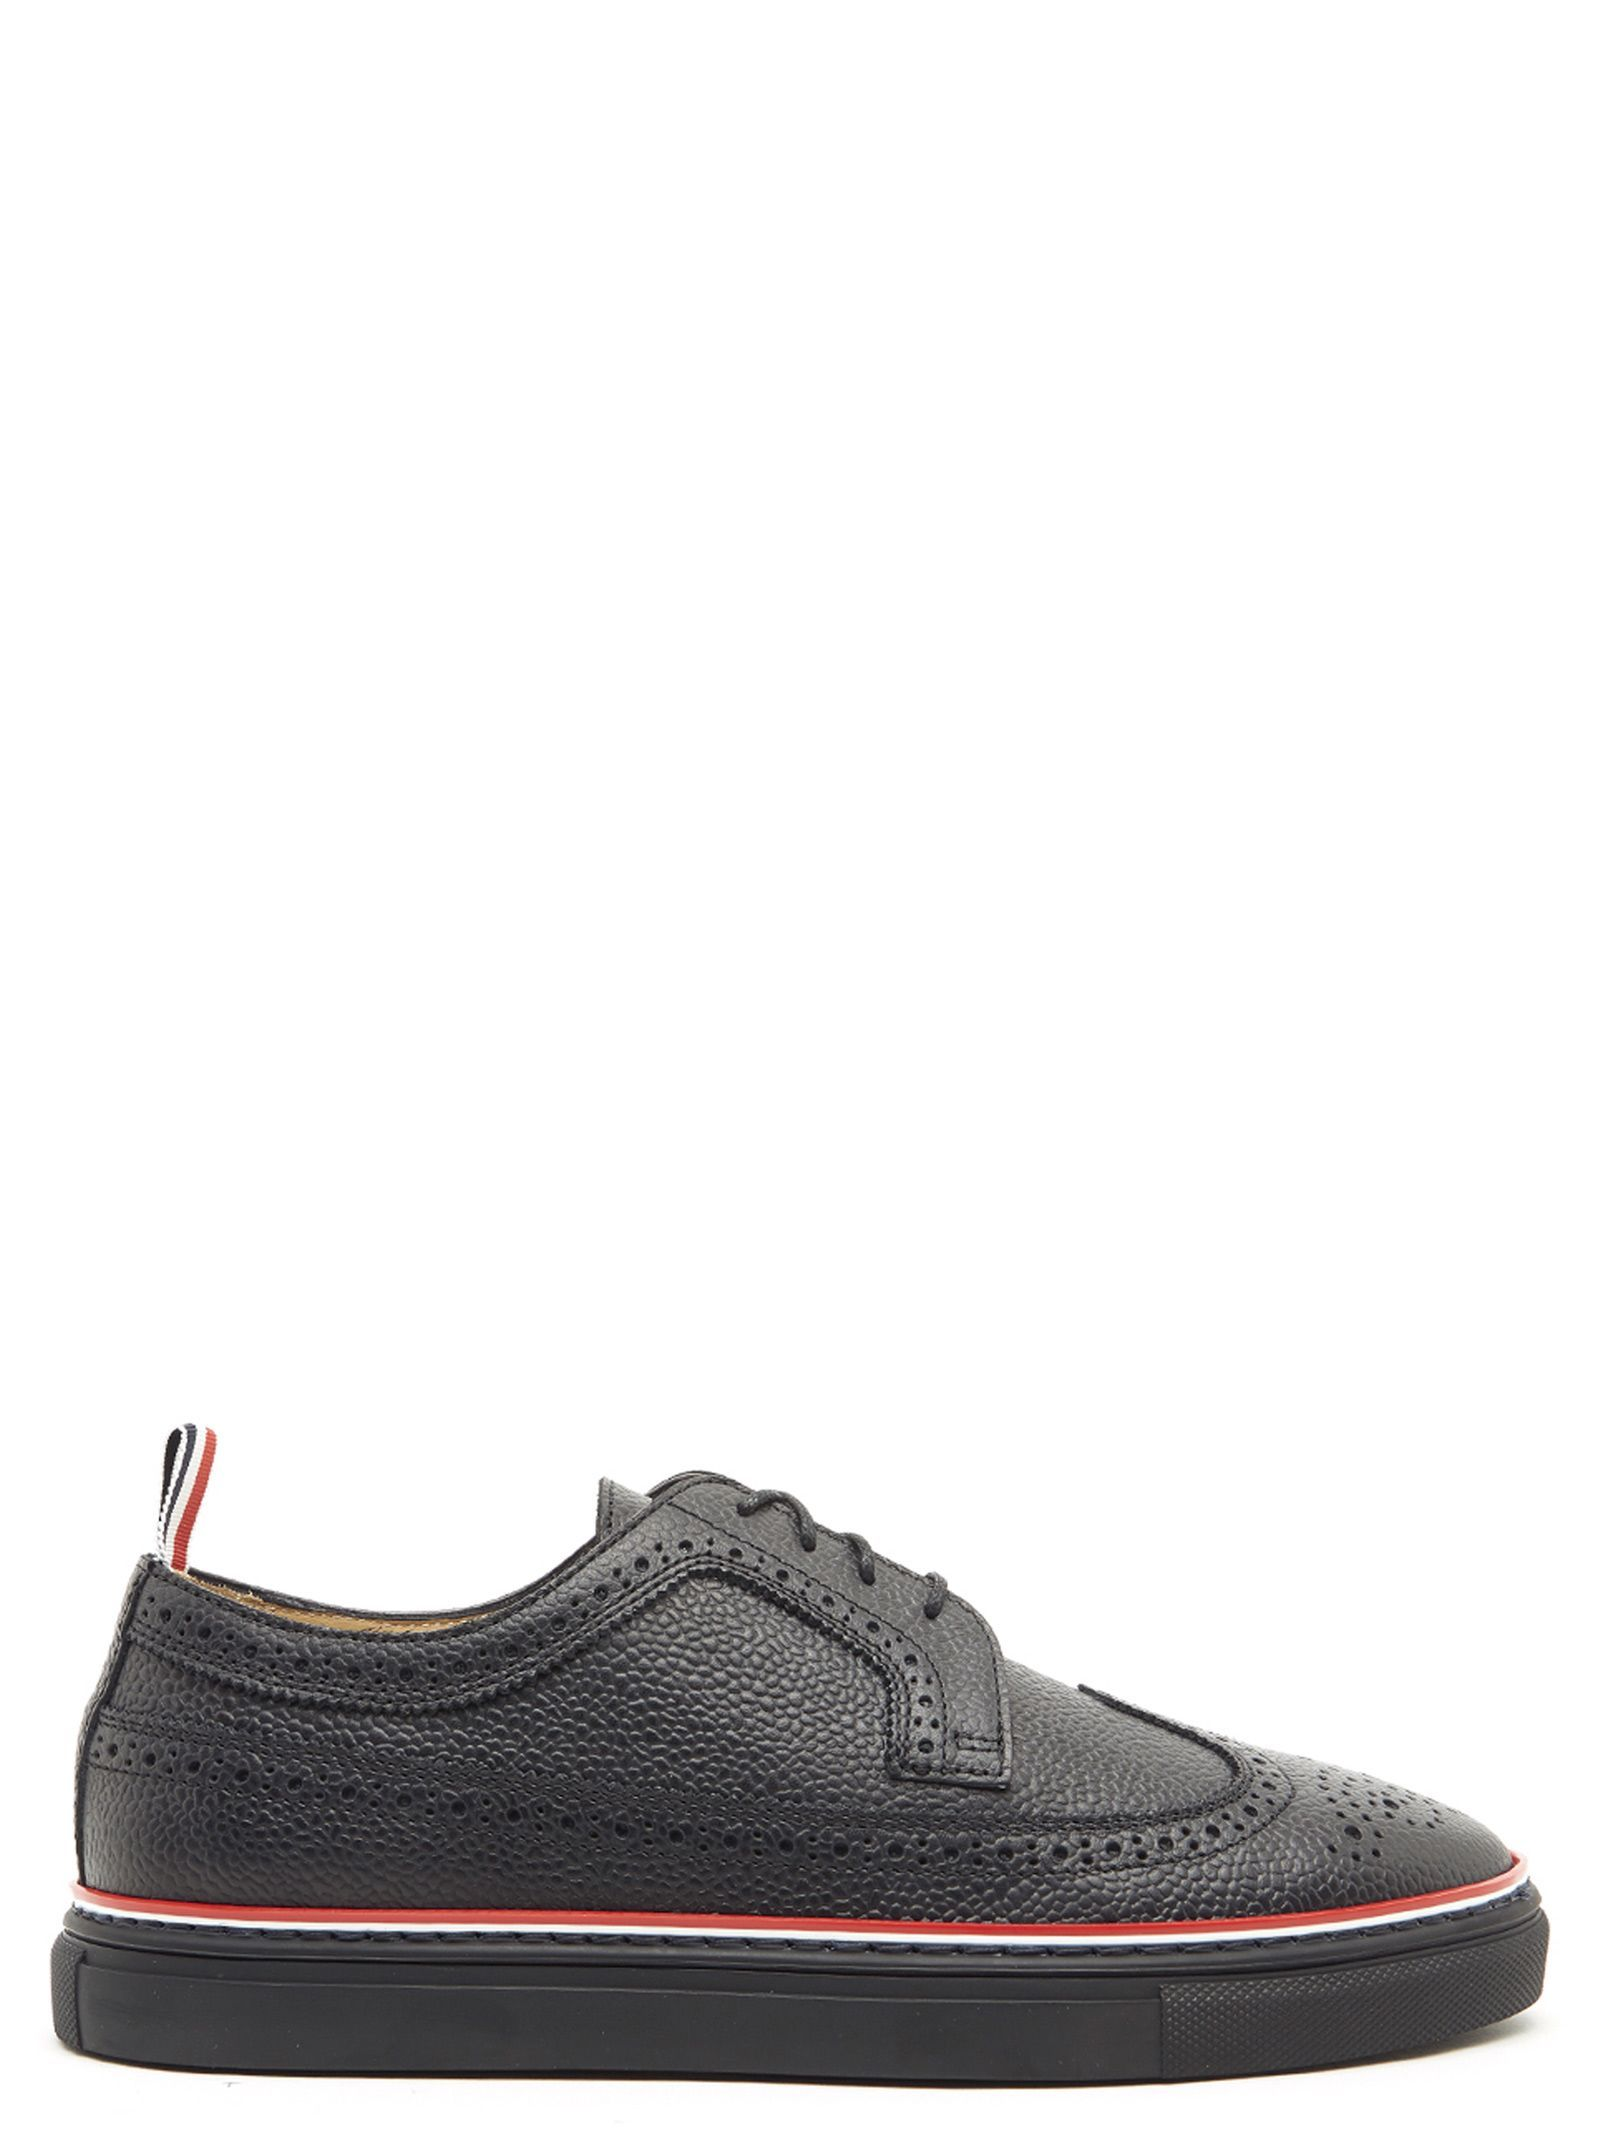 shoes In Thom 'longwing' Shoes Browne thombrowne xXI0zq